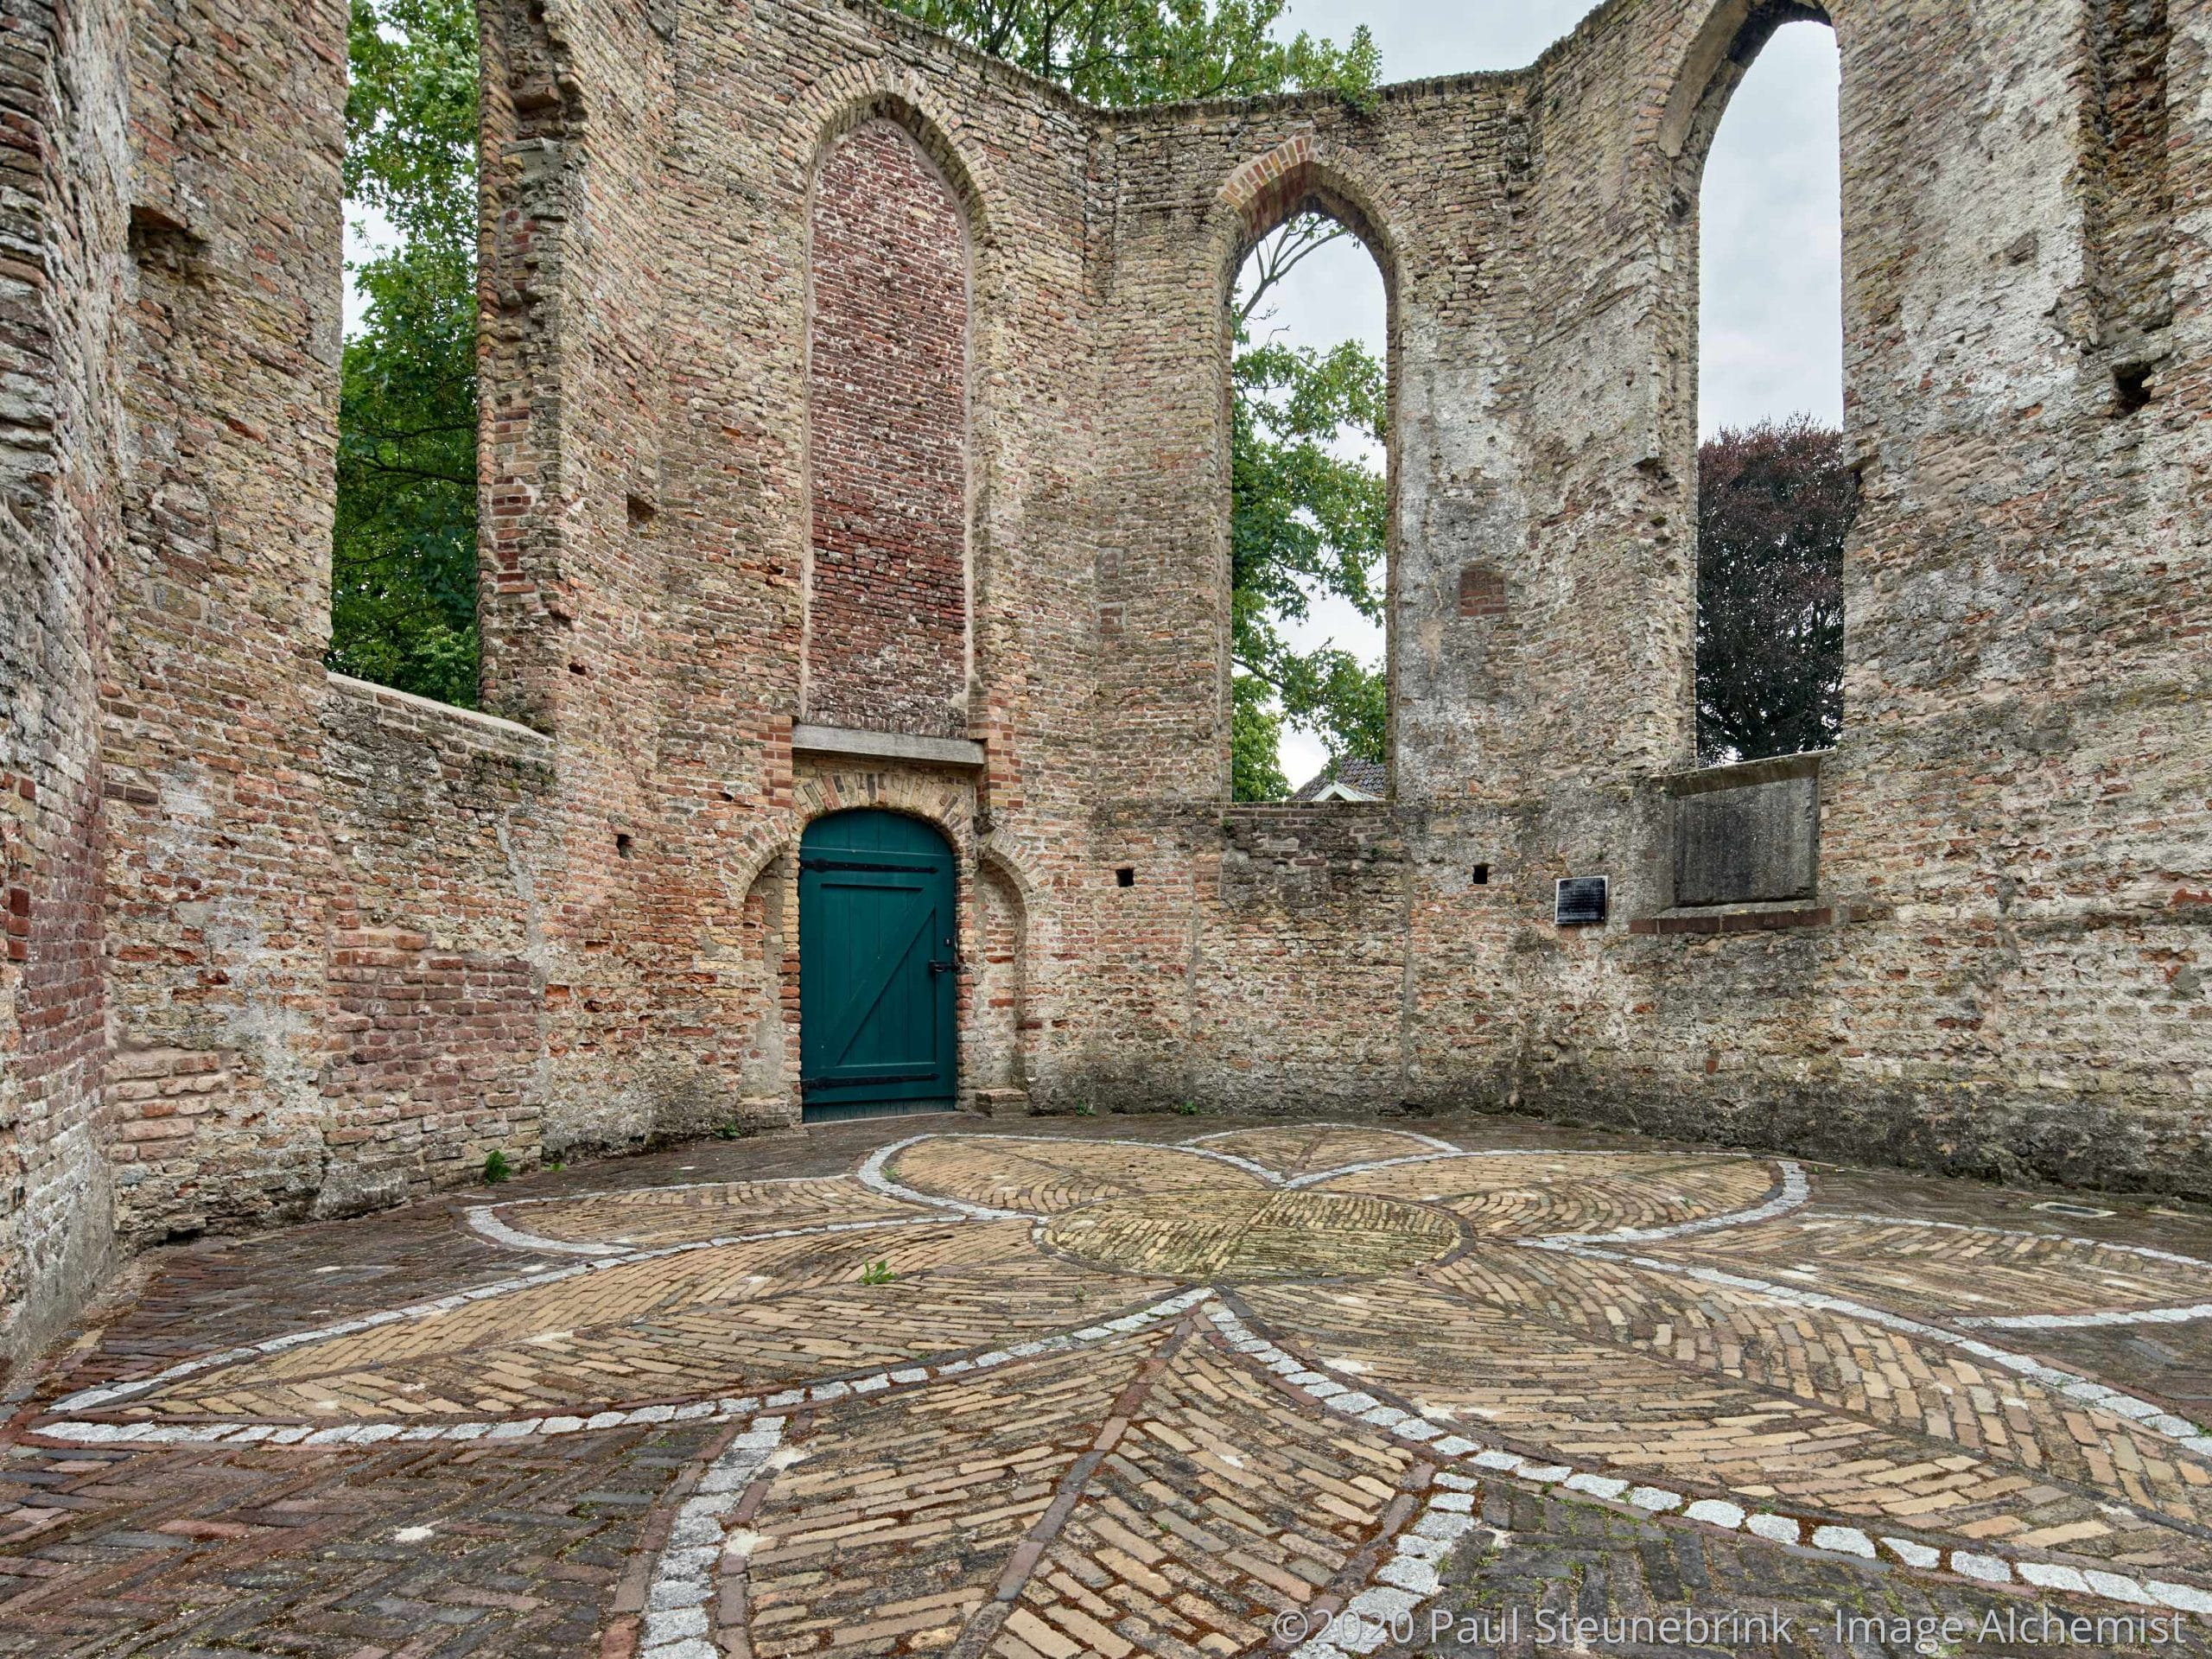 ruin of church, with style